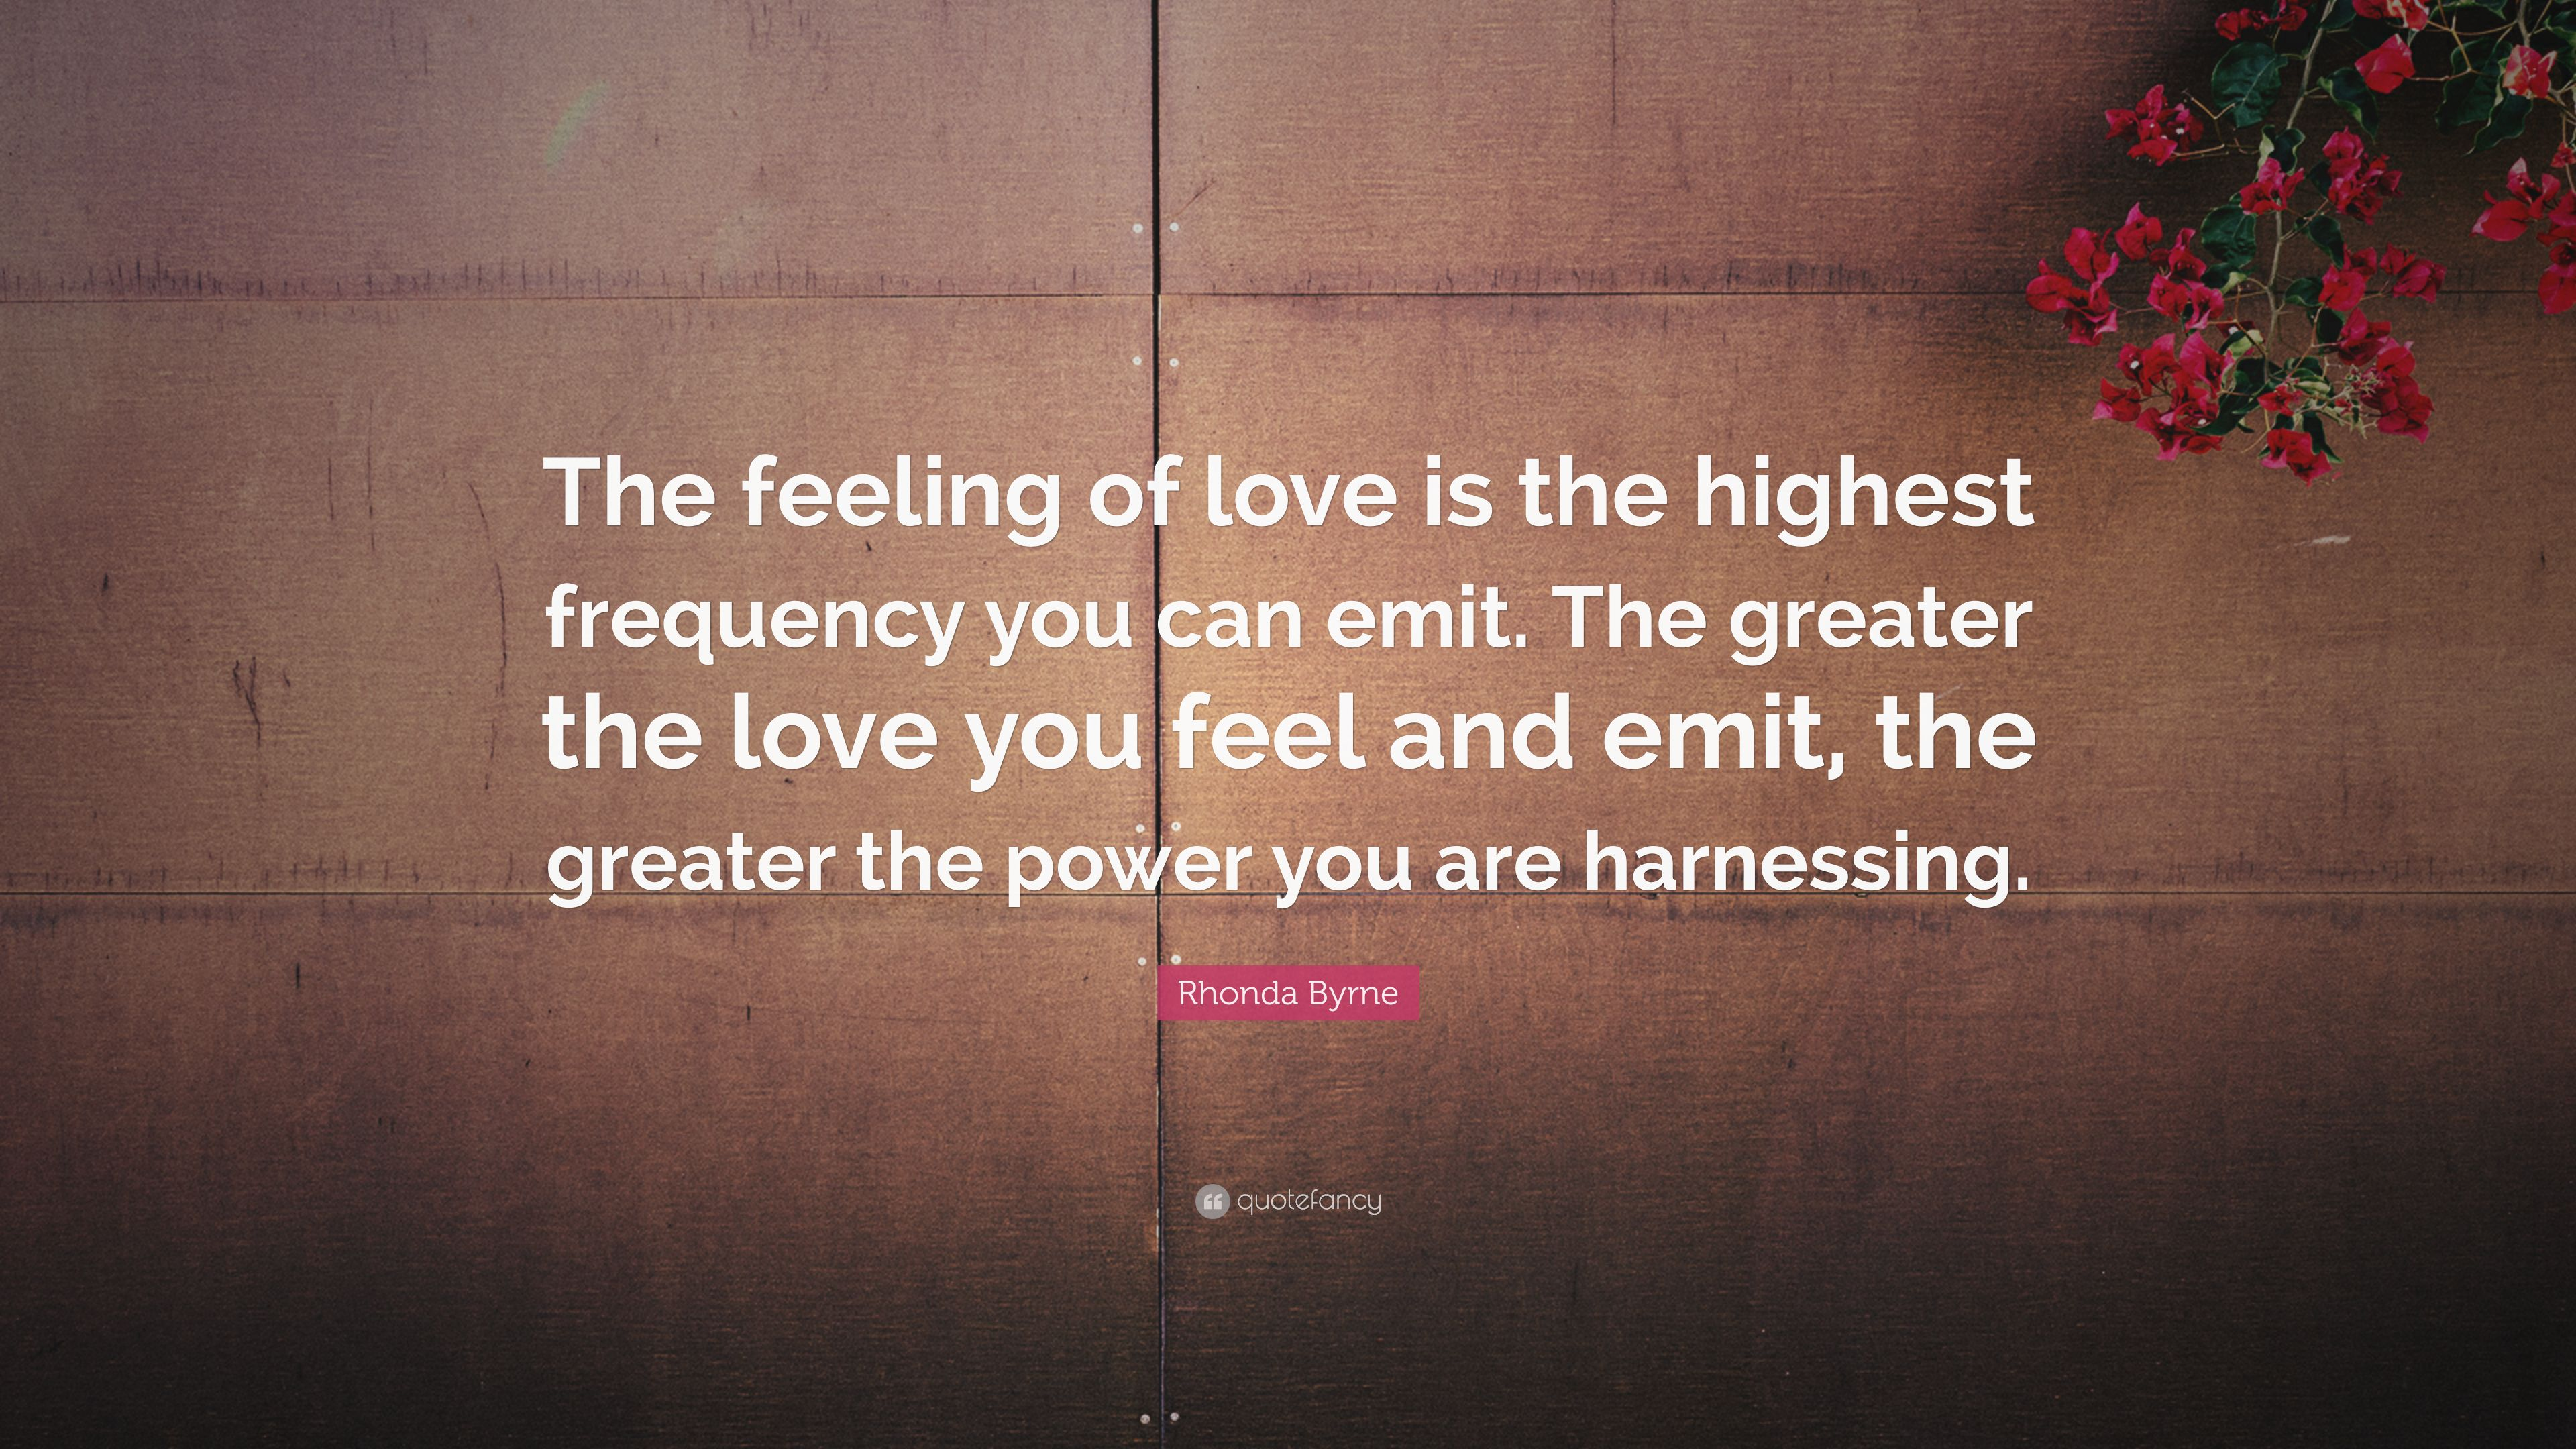 Rhonda Byrne Quote: The feeling of love is the highest